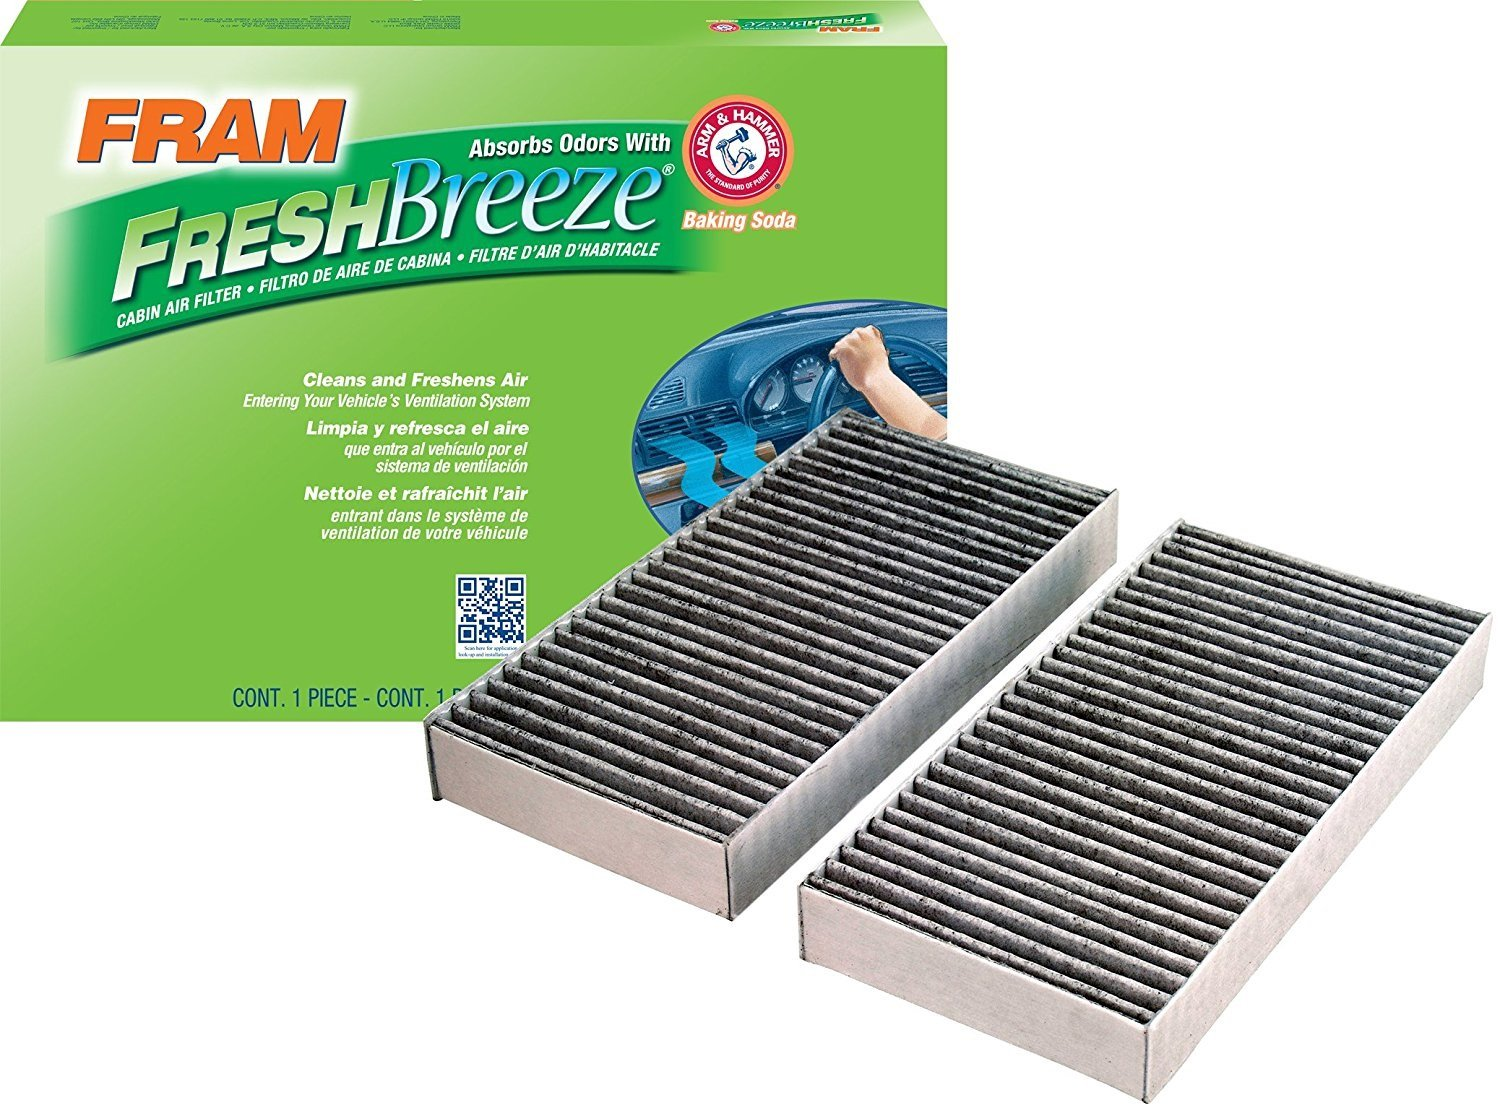 FRAM CF10135 Fresh Breeze Cabin Air Filter with Arm & Hammer (Pack of 2)